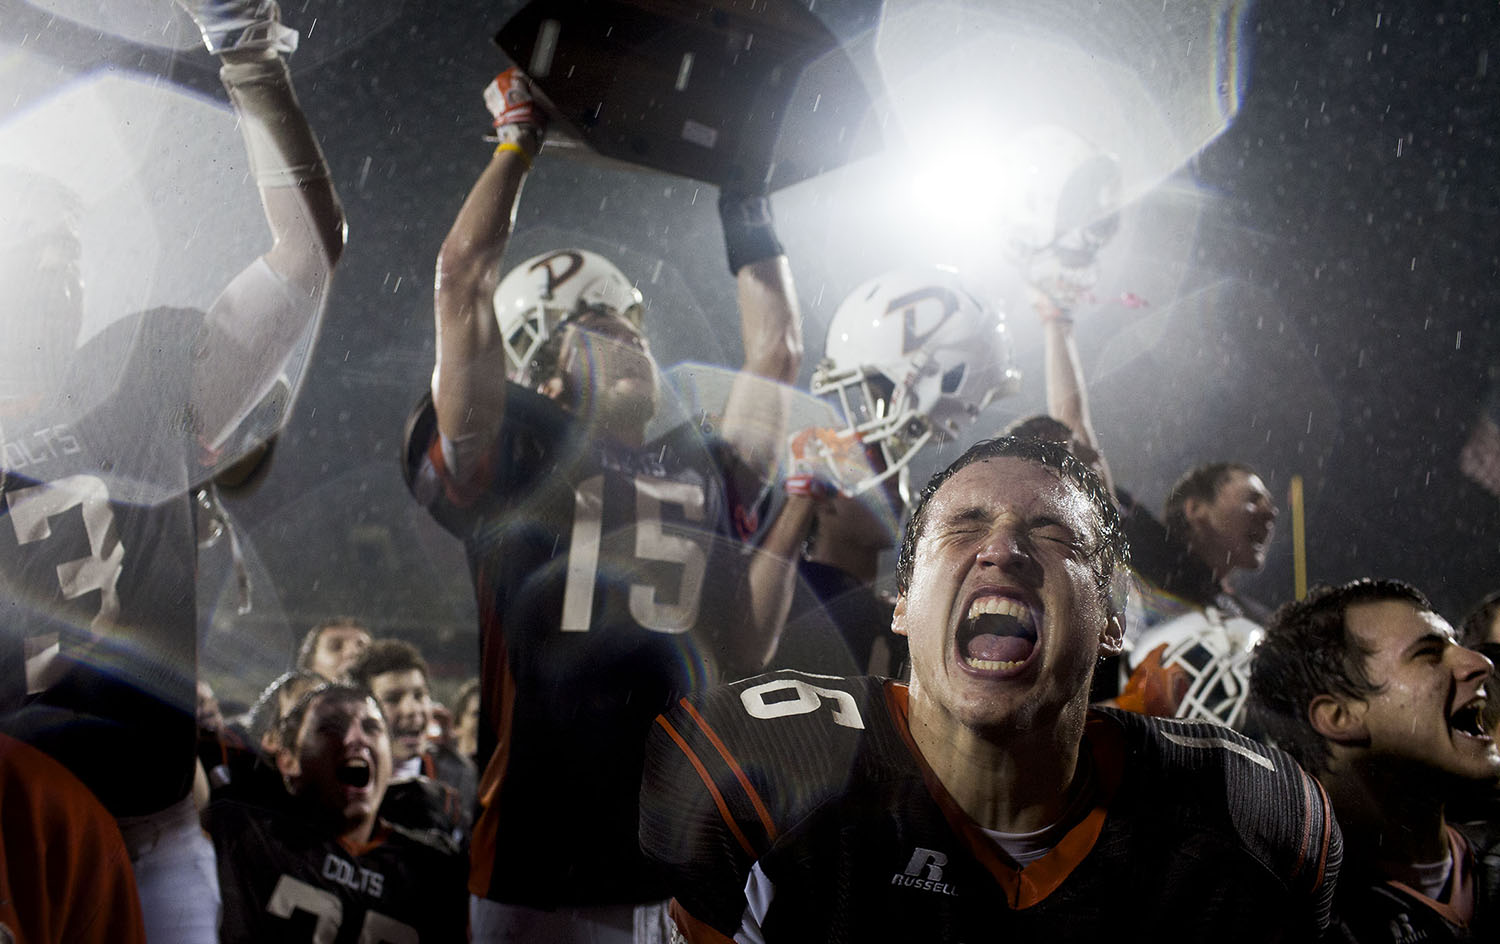 Desales quarterback Austin Johnson cheers with his teammates after Desales' 26-0 victory over Newport Central Catholic on Friday, Dec. 5, 2014, in the Class 2A State Championship at L.T. Smith Stadium in Bowling Green, Ky.